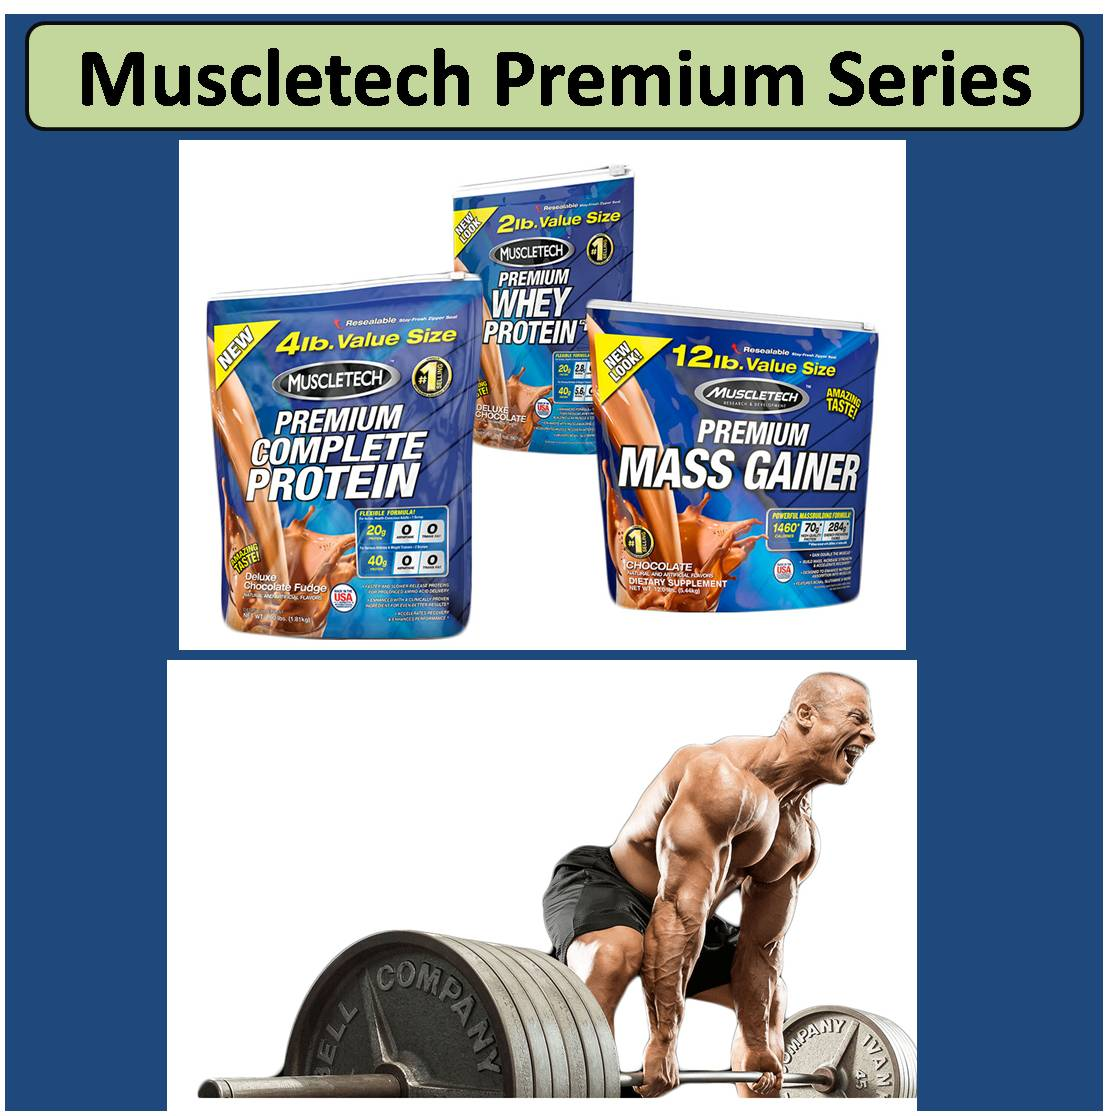 Muscletech Premium Series